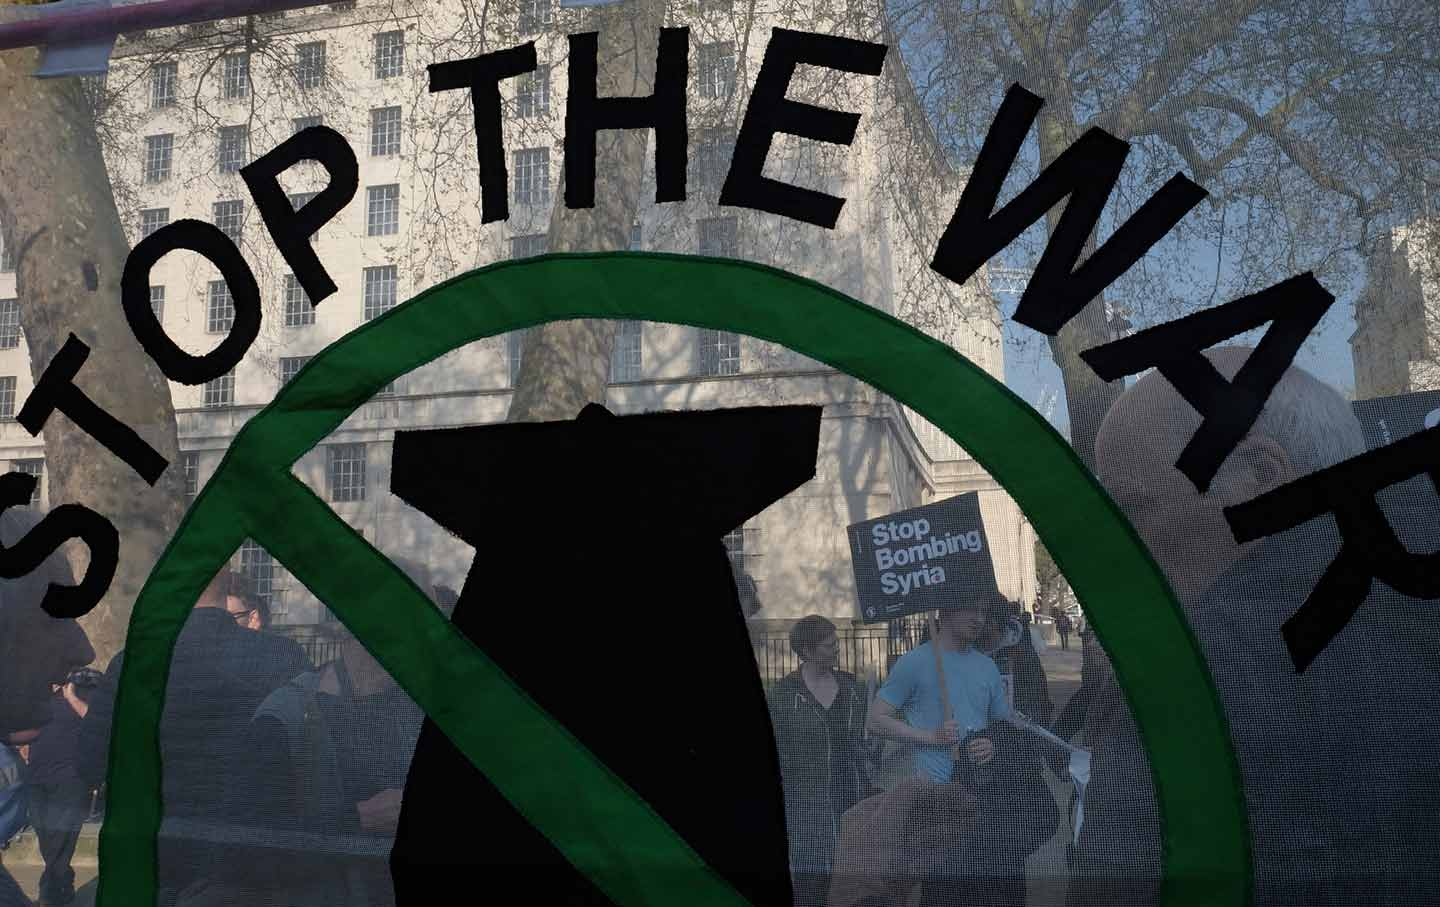 London protest against militarism in Syria